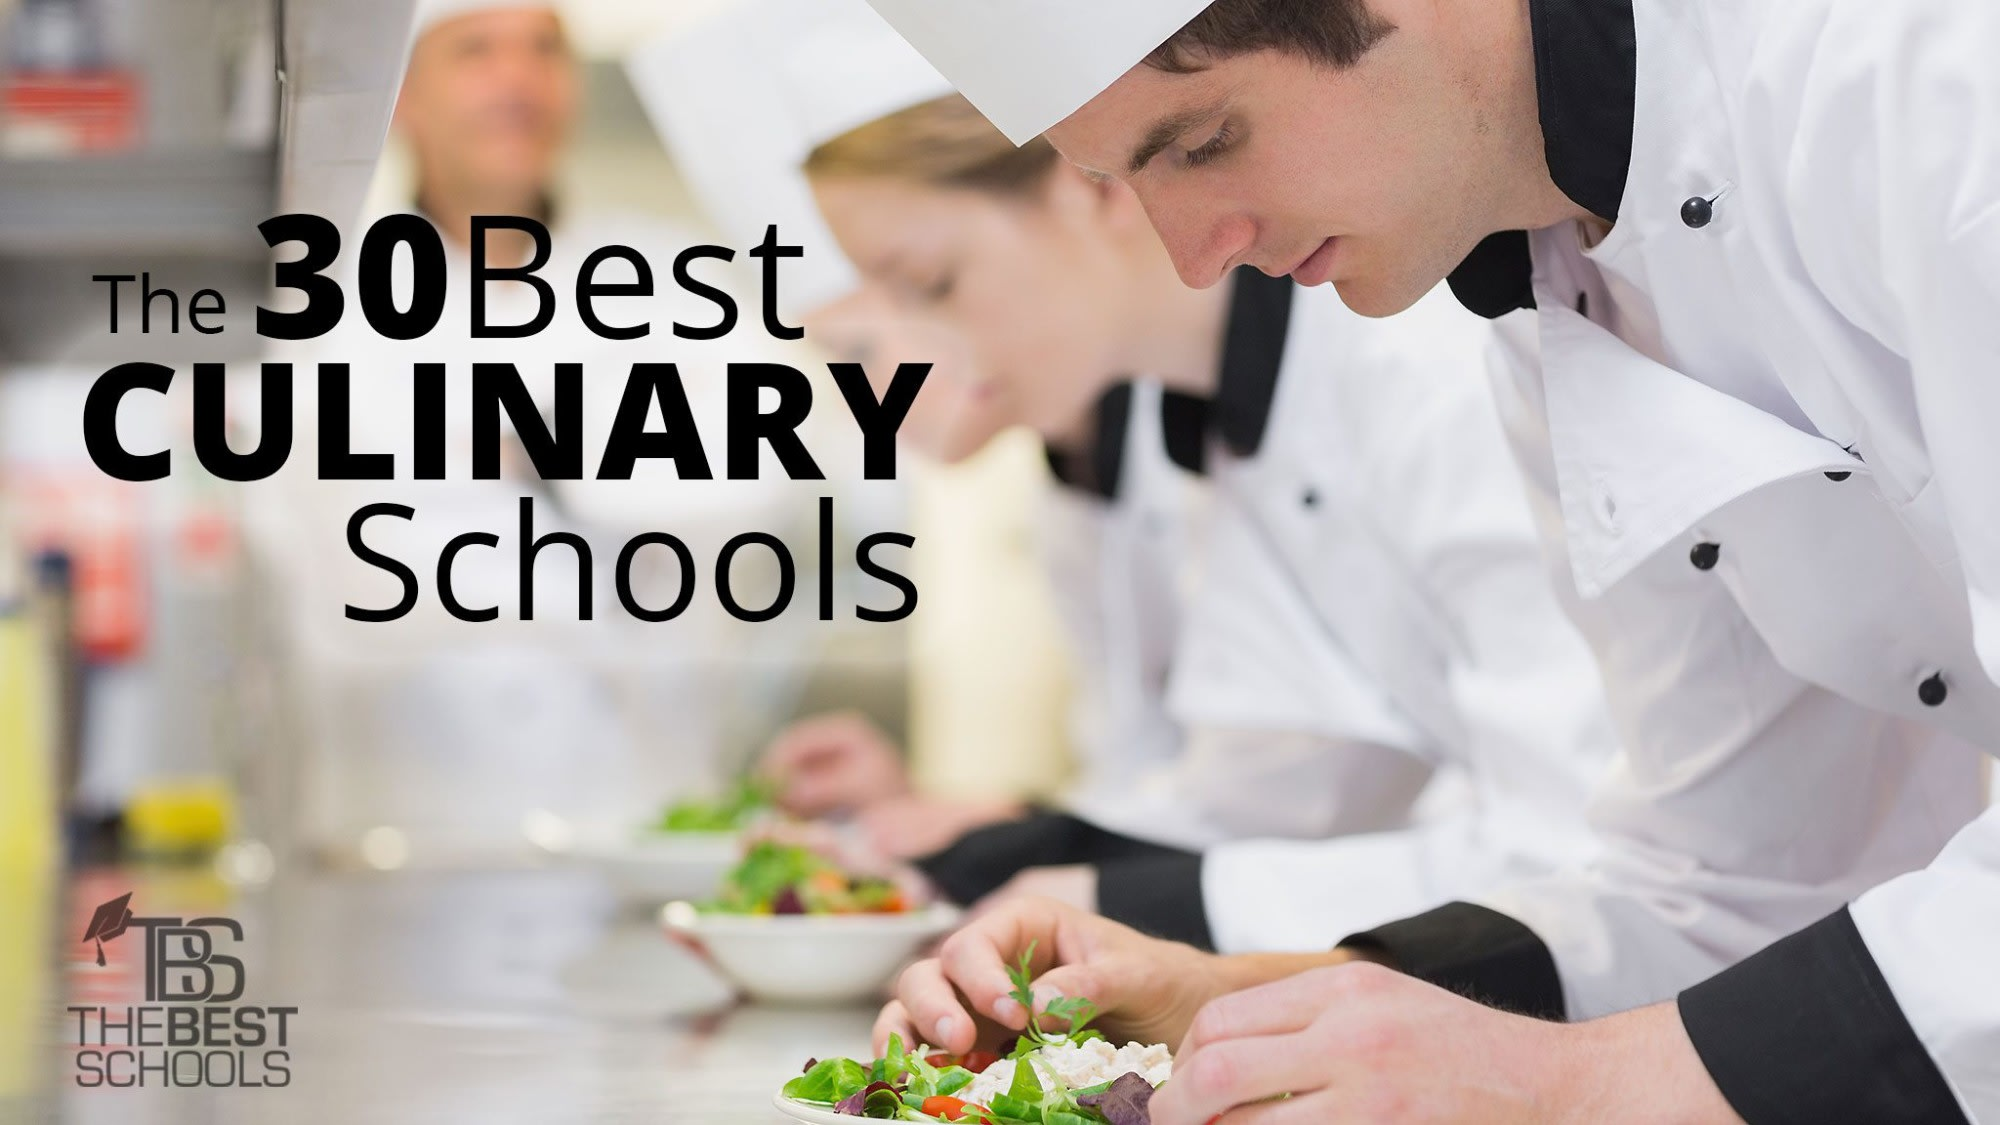 The 30 Best Culinary Schools